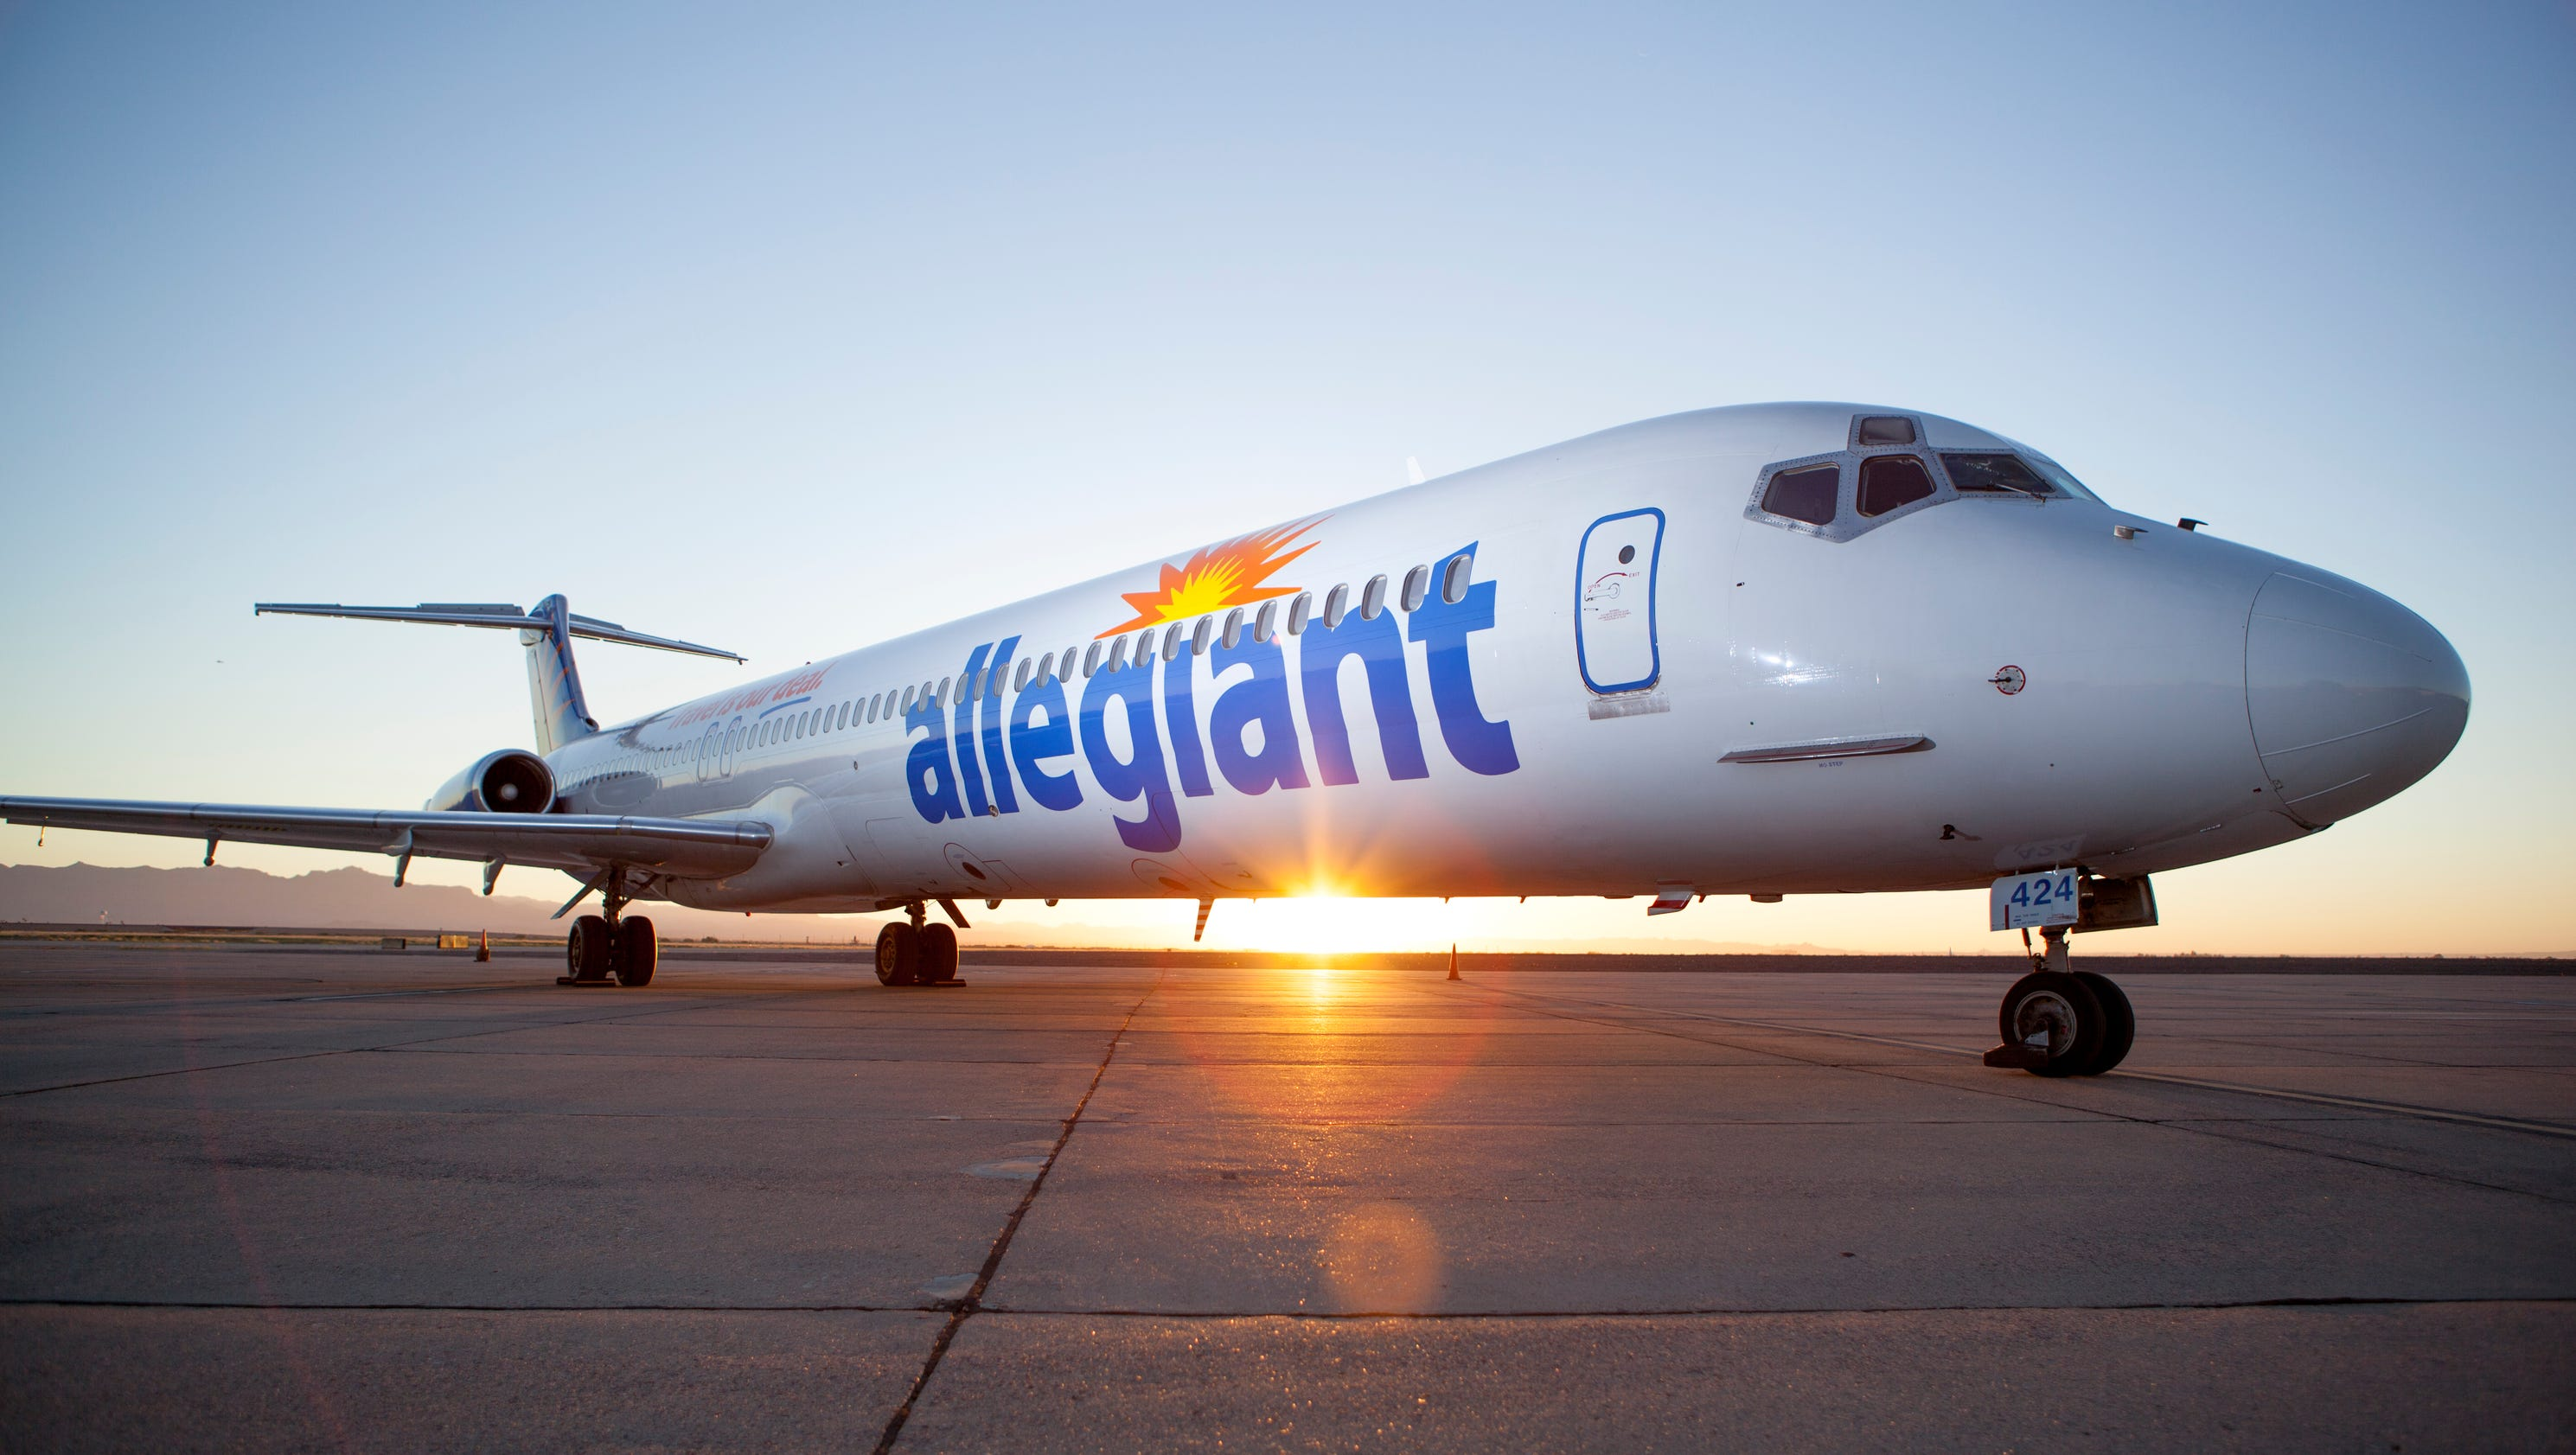 This account's Tweets are protected. Only confirmed followers have access to @allegiantair 's Tweets and complete profile. Click the